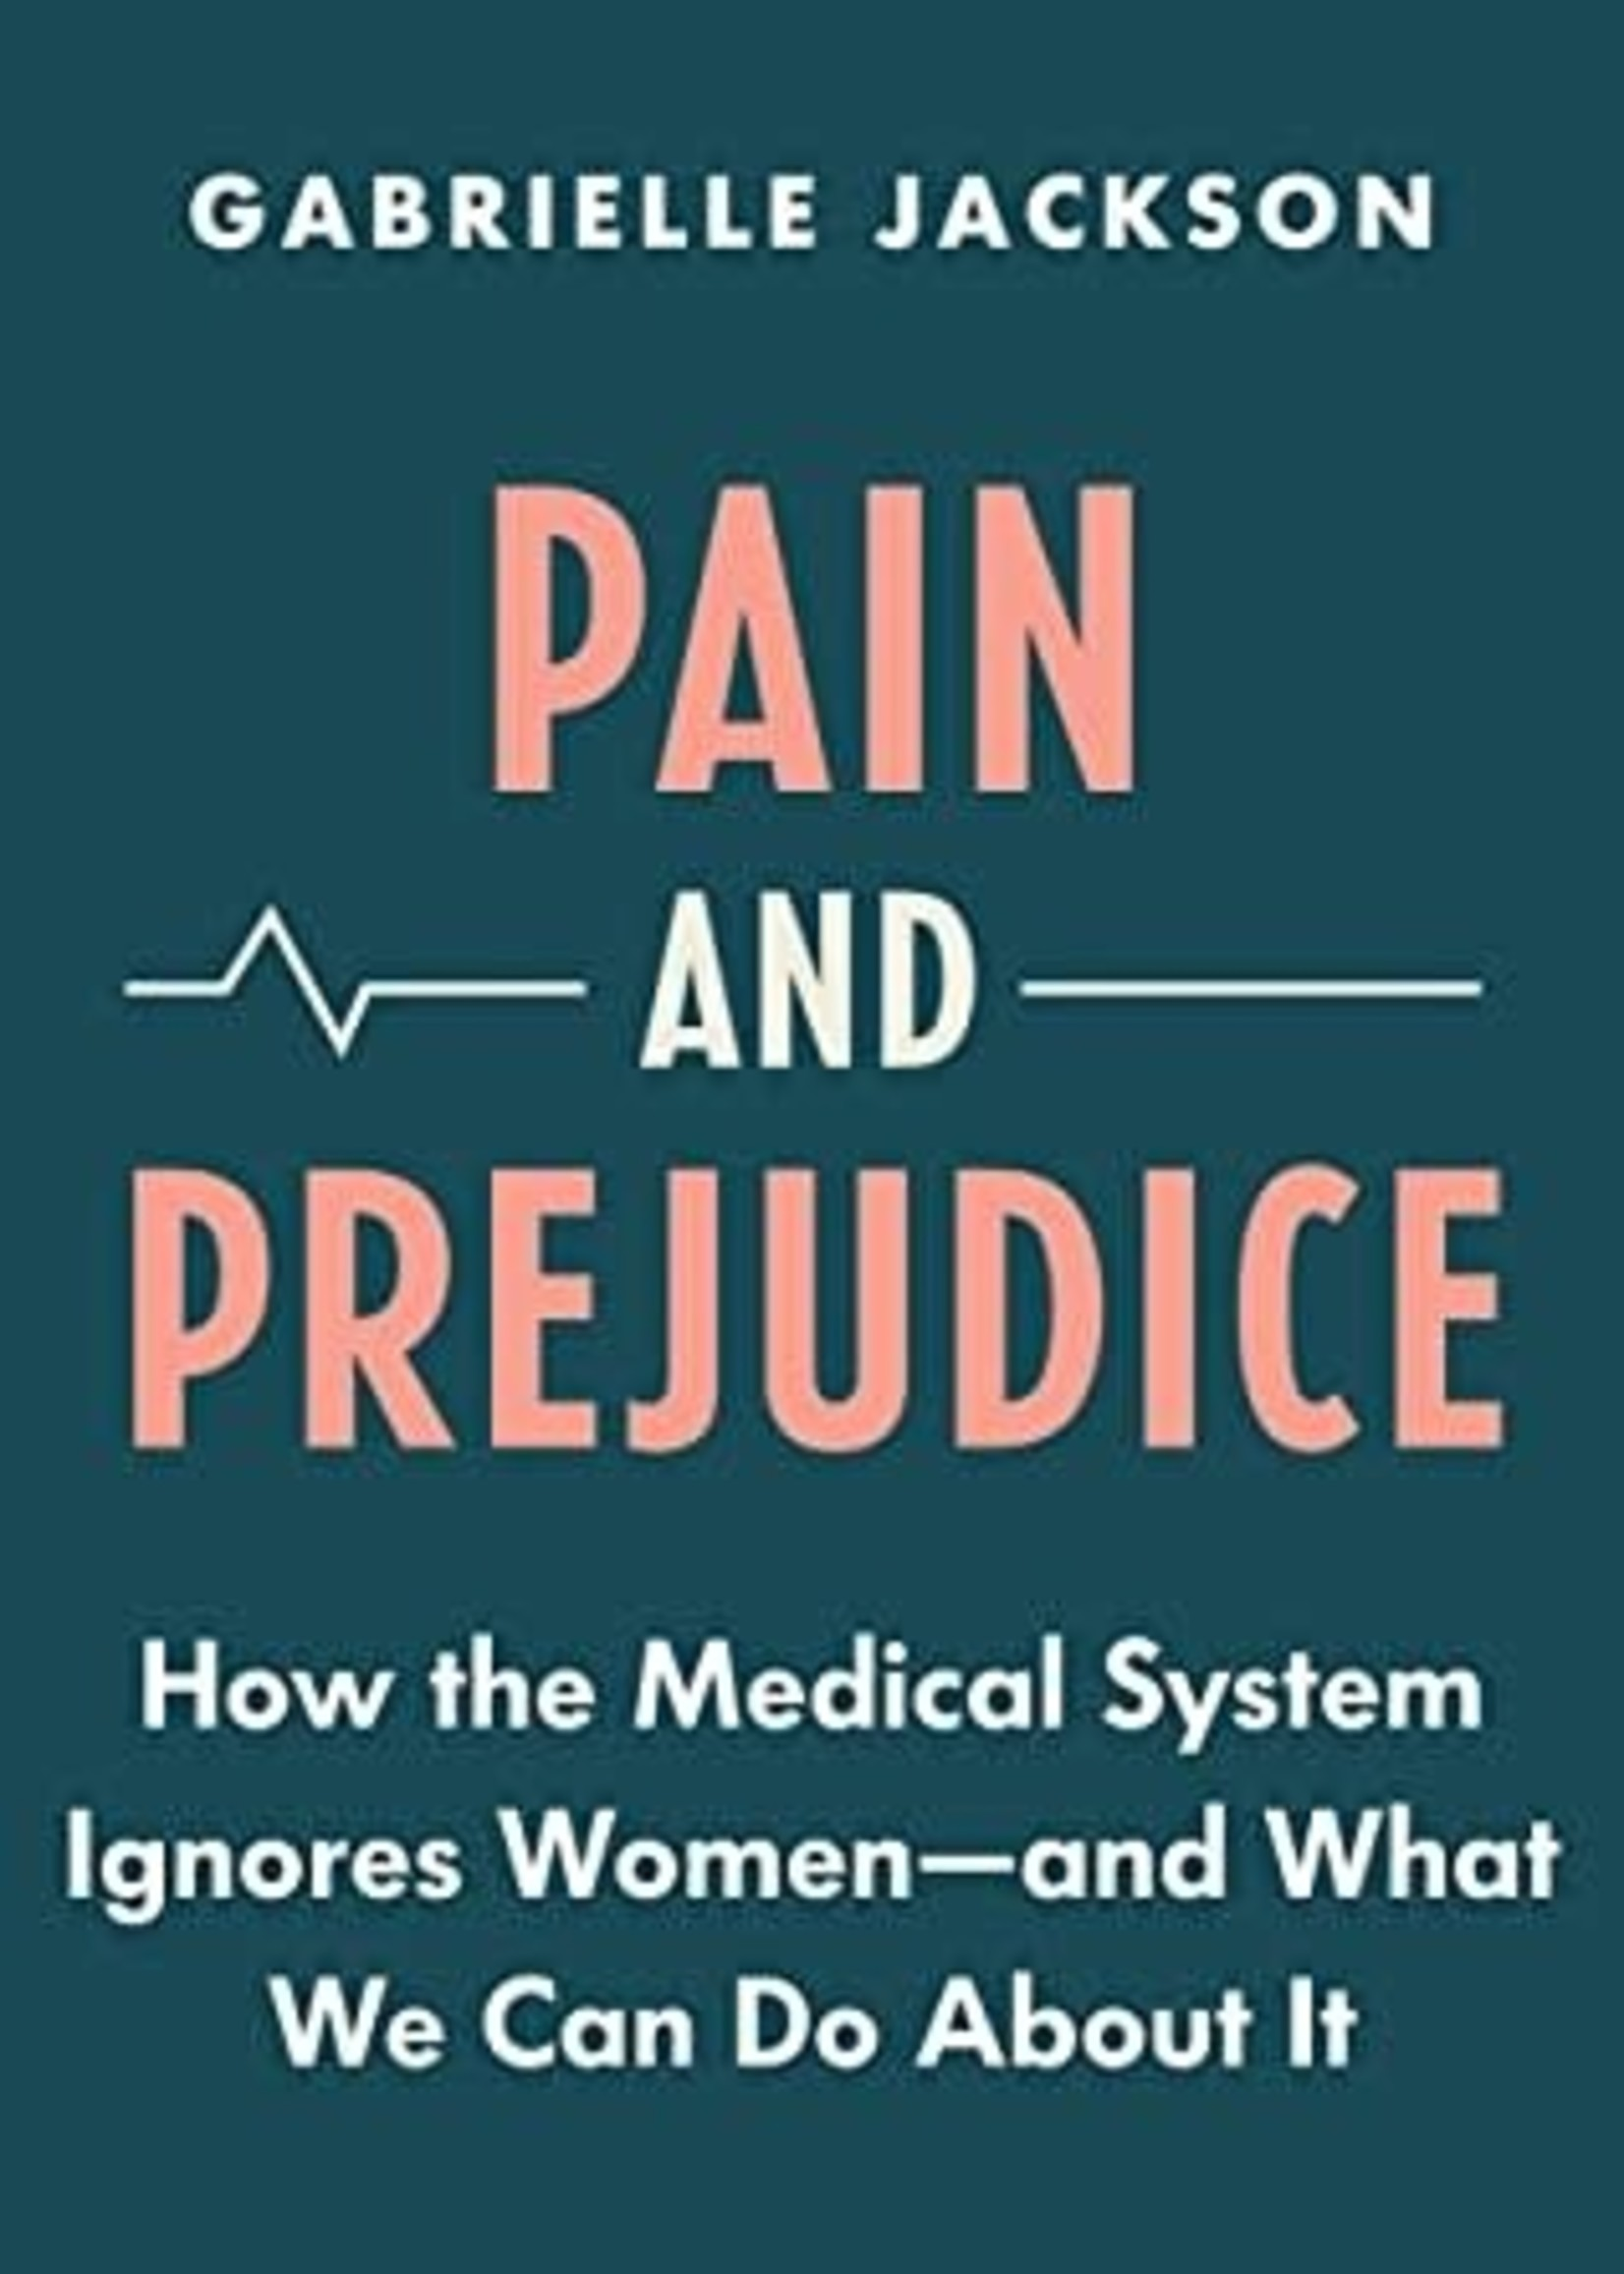 Pain and Prejudice: How the Medical System Ignores Women—And What We Can Do About It by Gabrielle Jackson